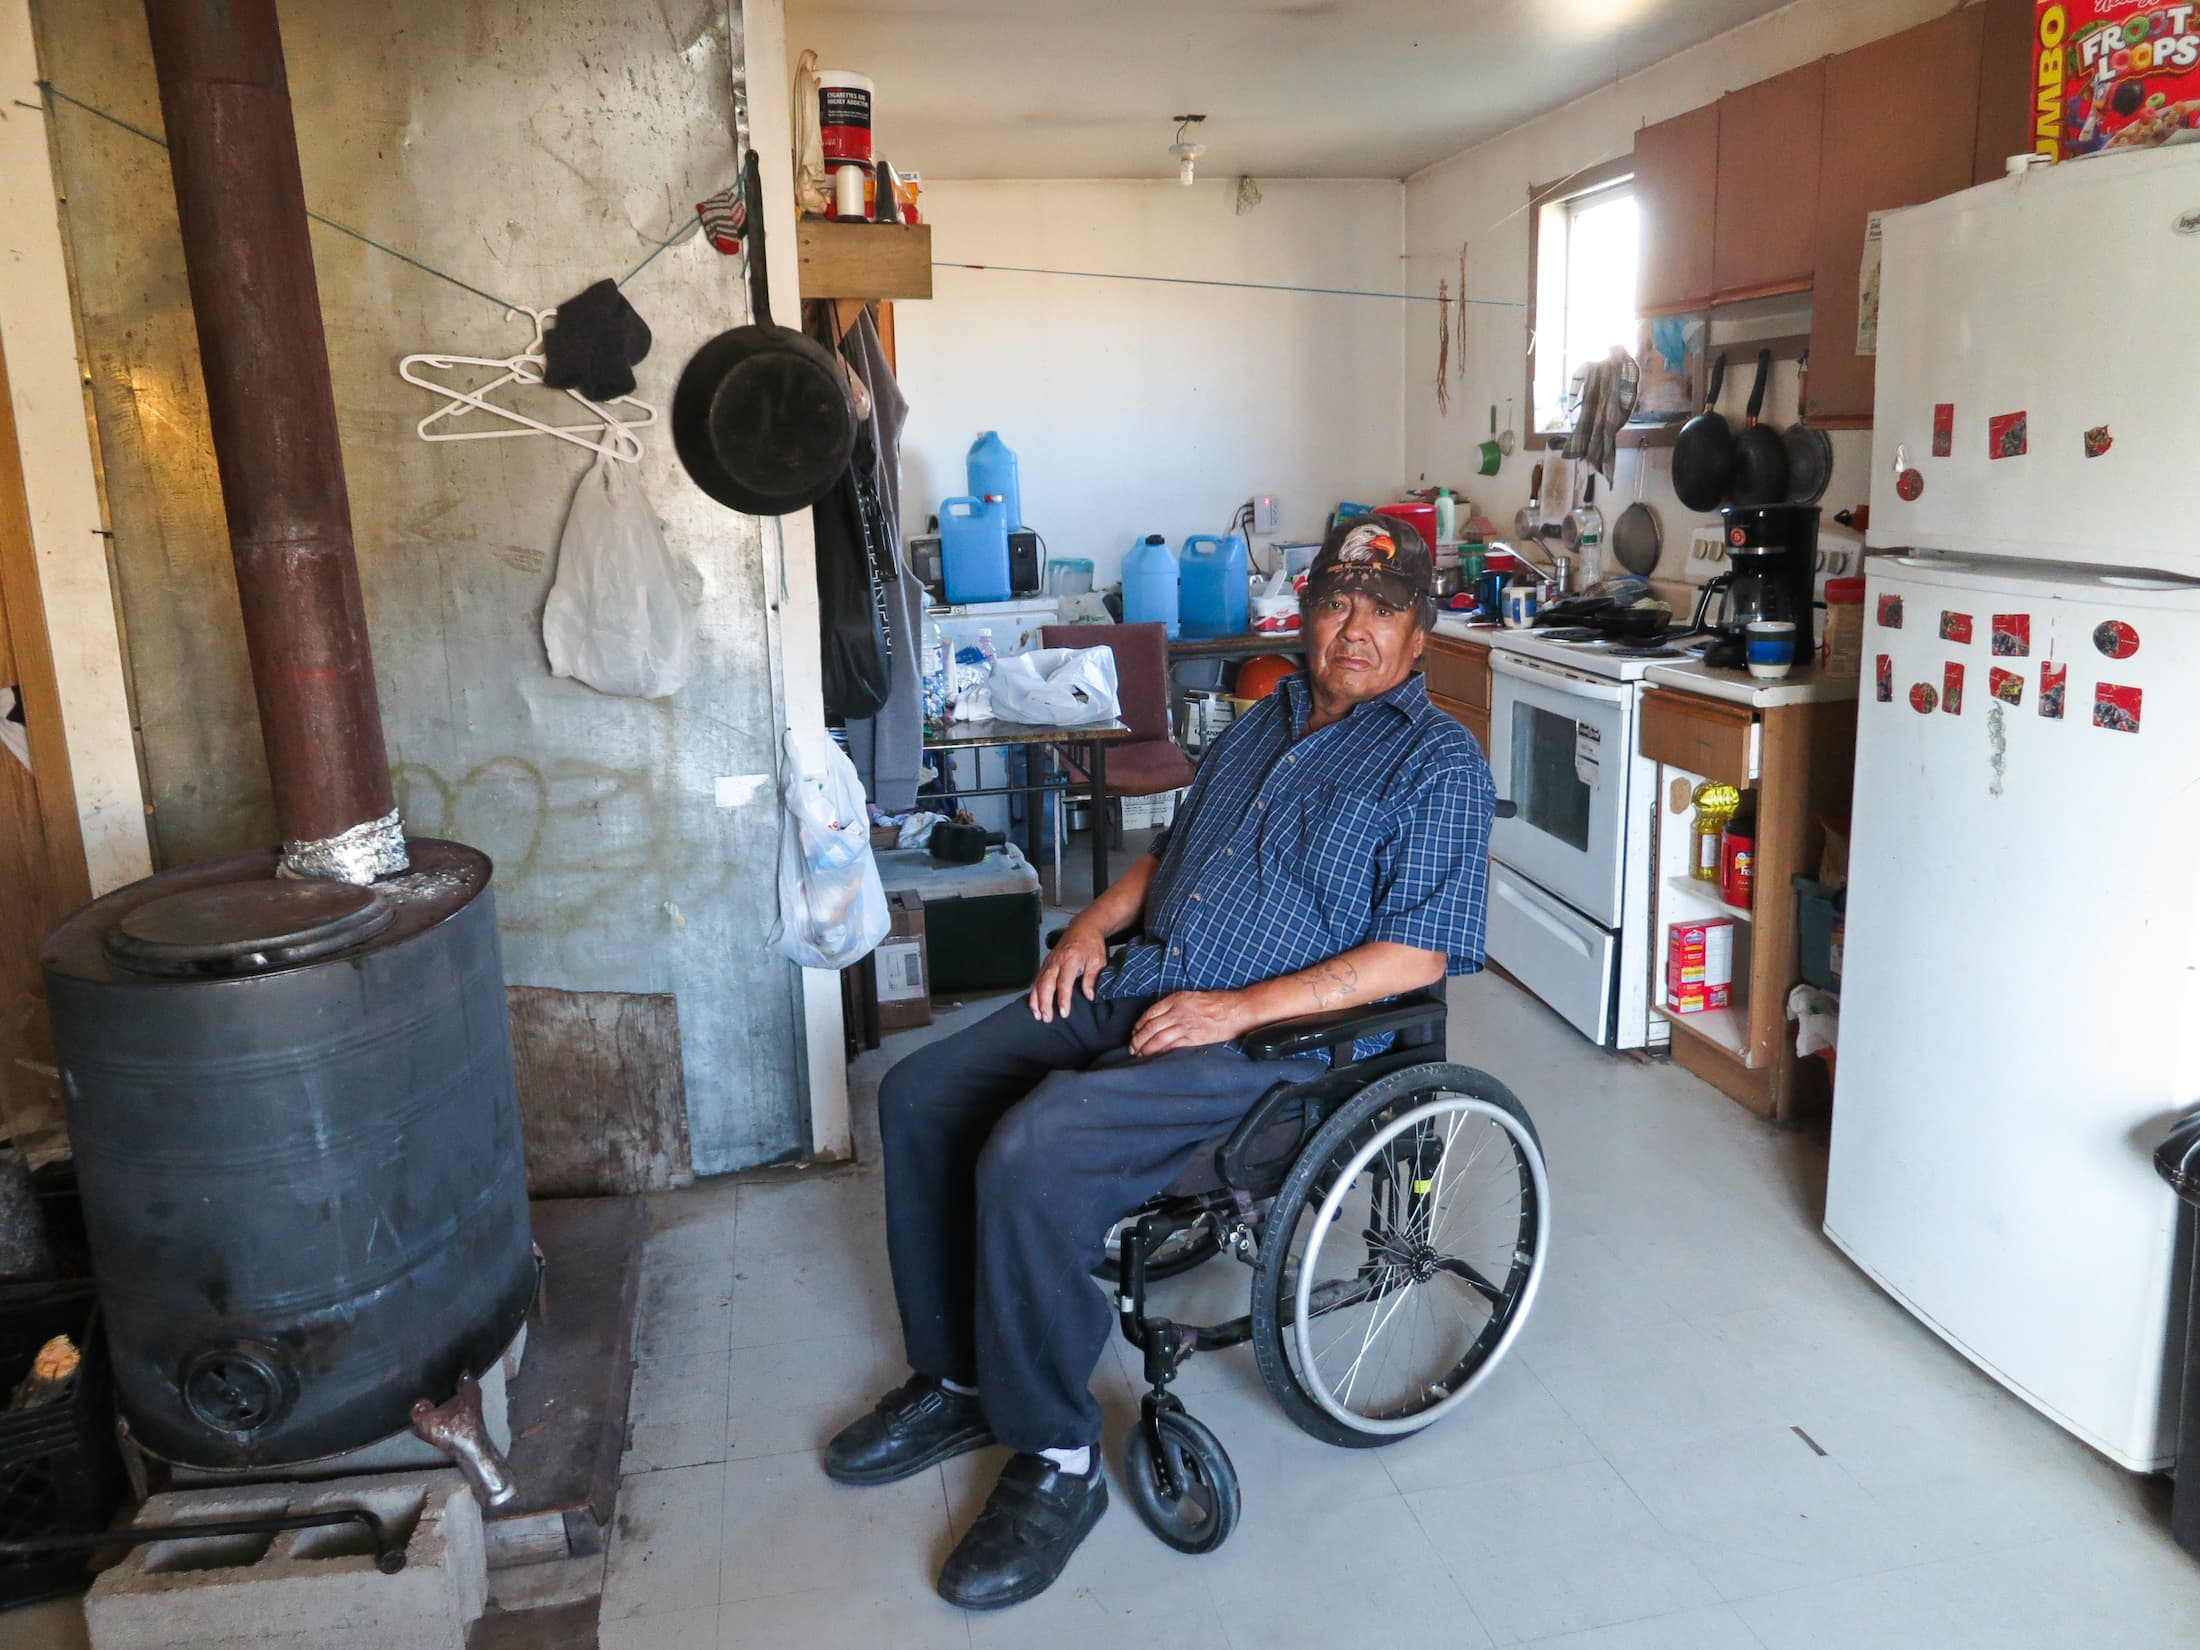 Walter Sakanee, an elder living in Neskantaga First Nation, has had difficulty fighting infections in his legs. He relies on his family members to collect safe drinking water for him in blue plastic jugs from a reverse osmosis machine located at the community's water treatment plant. He is not able to access the plant on his own due to his physical disability. Photo: Samer Muscati / Human Rights Watch